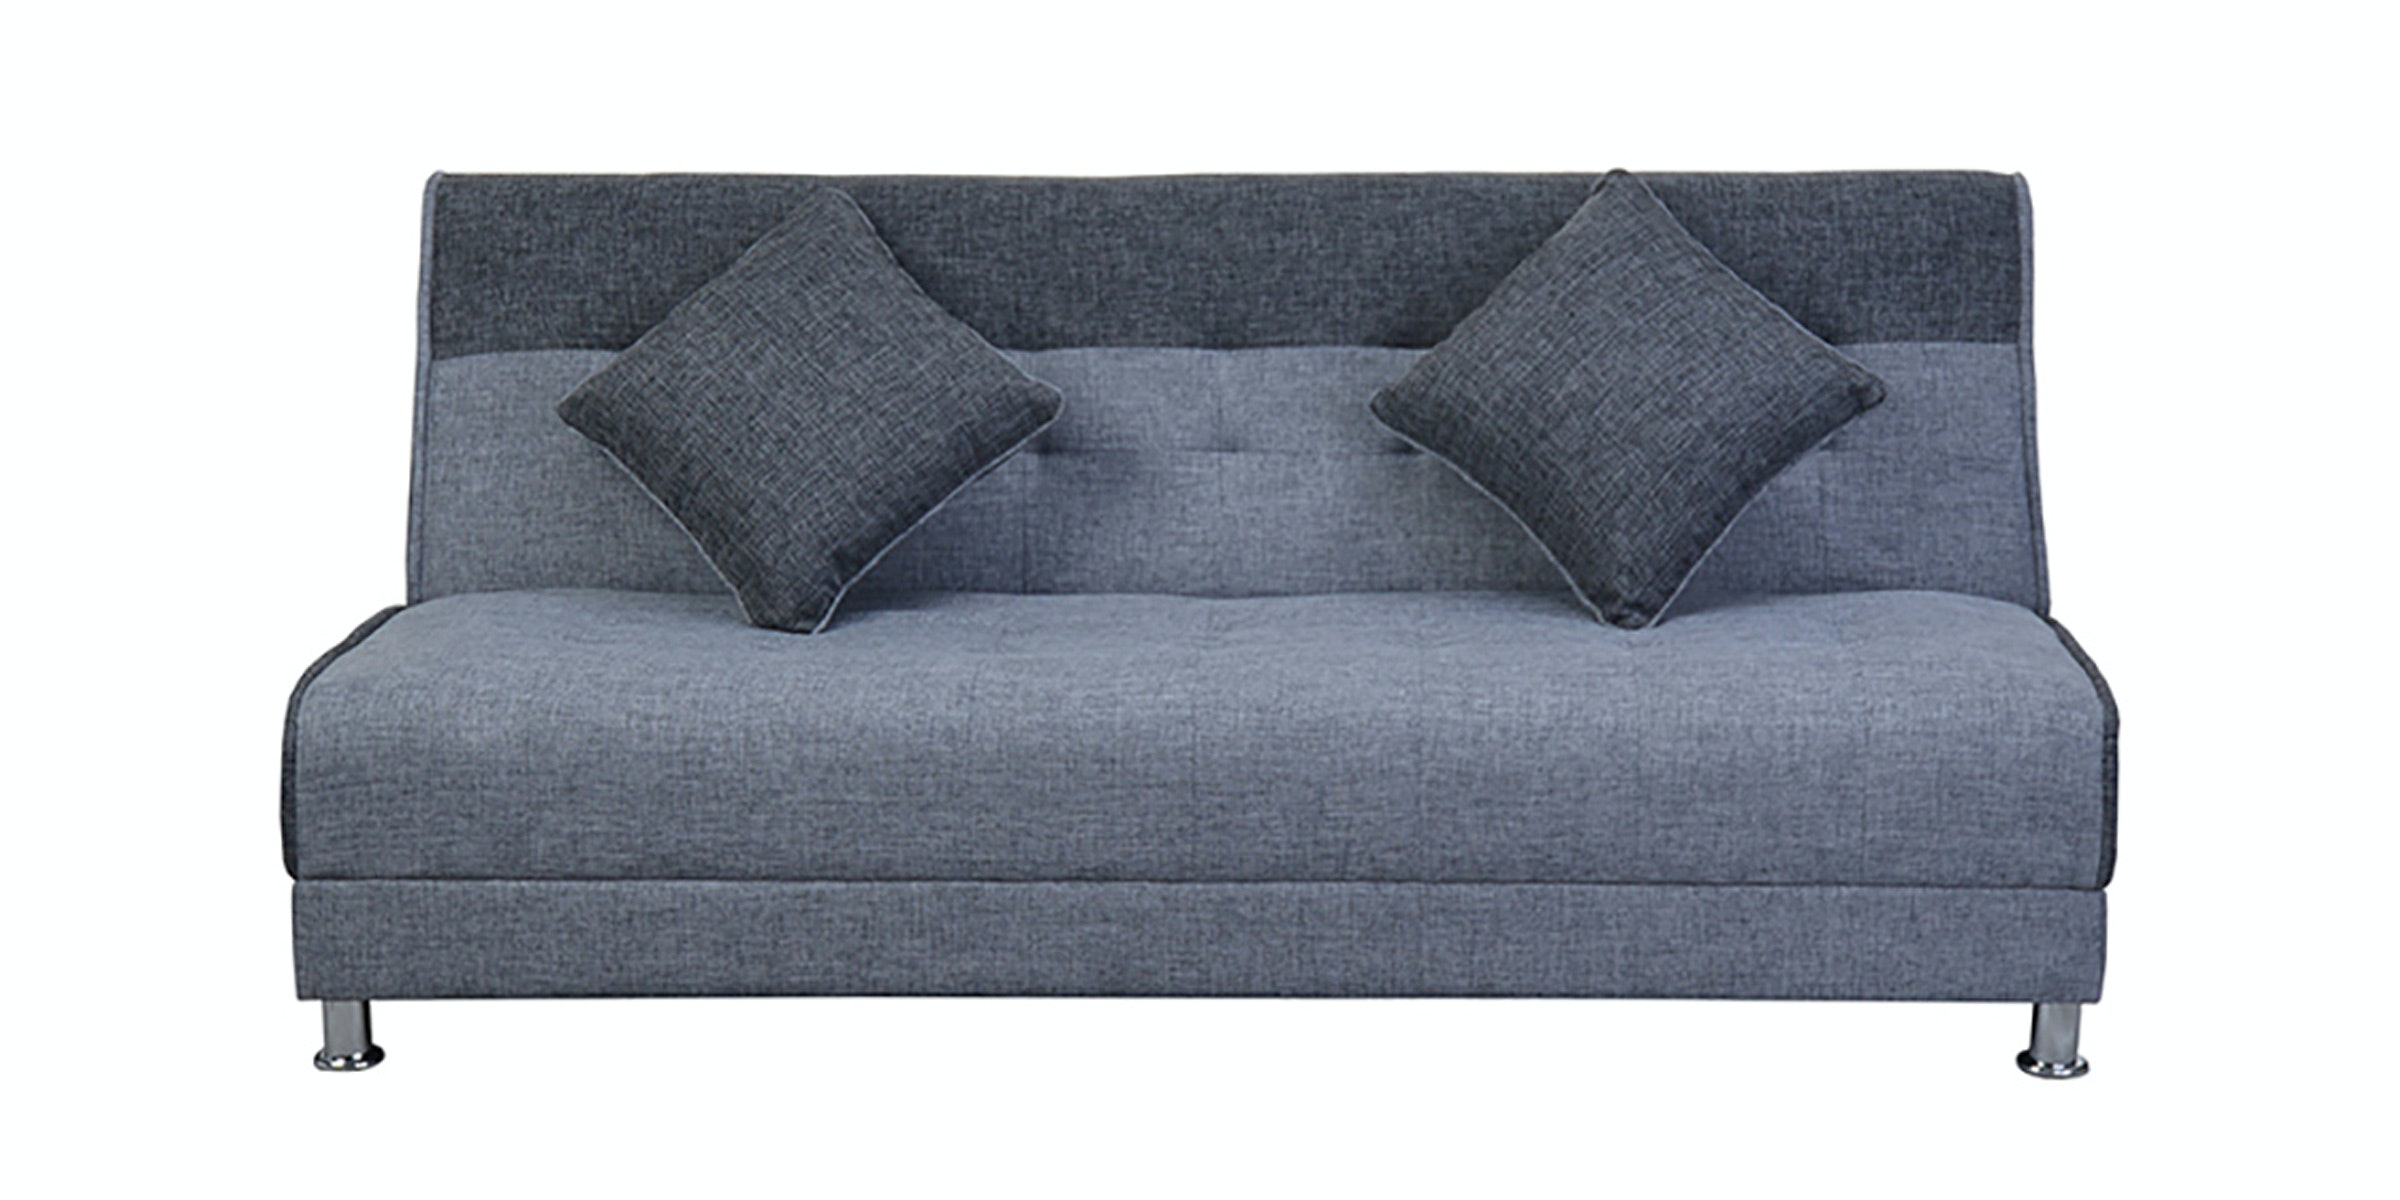 OLC Sofabed Ivanka Two Tone - Soft Grey